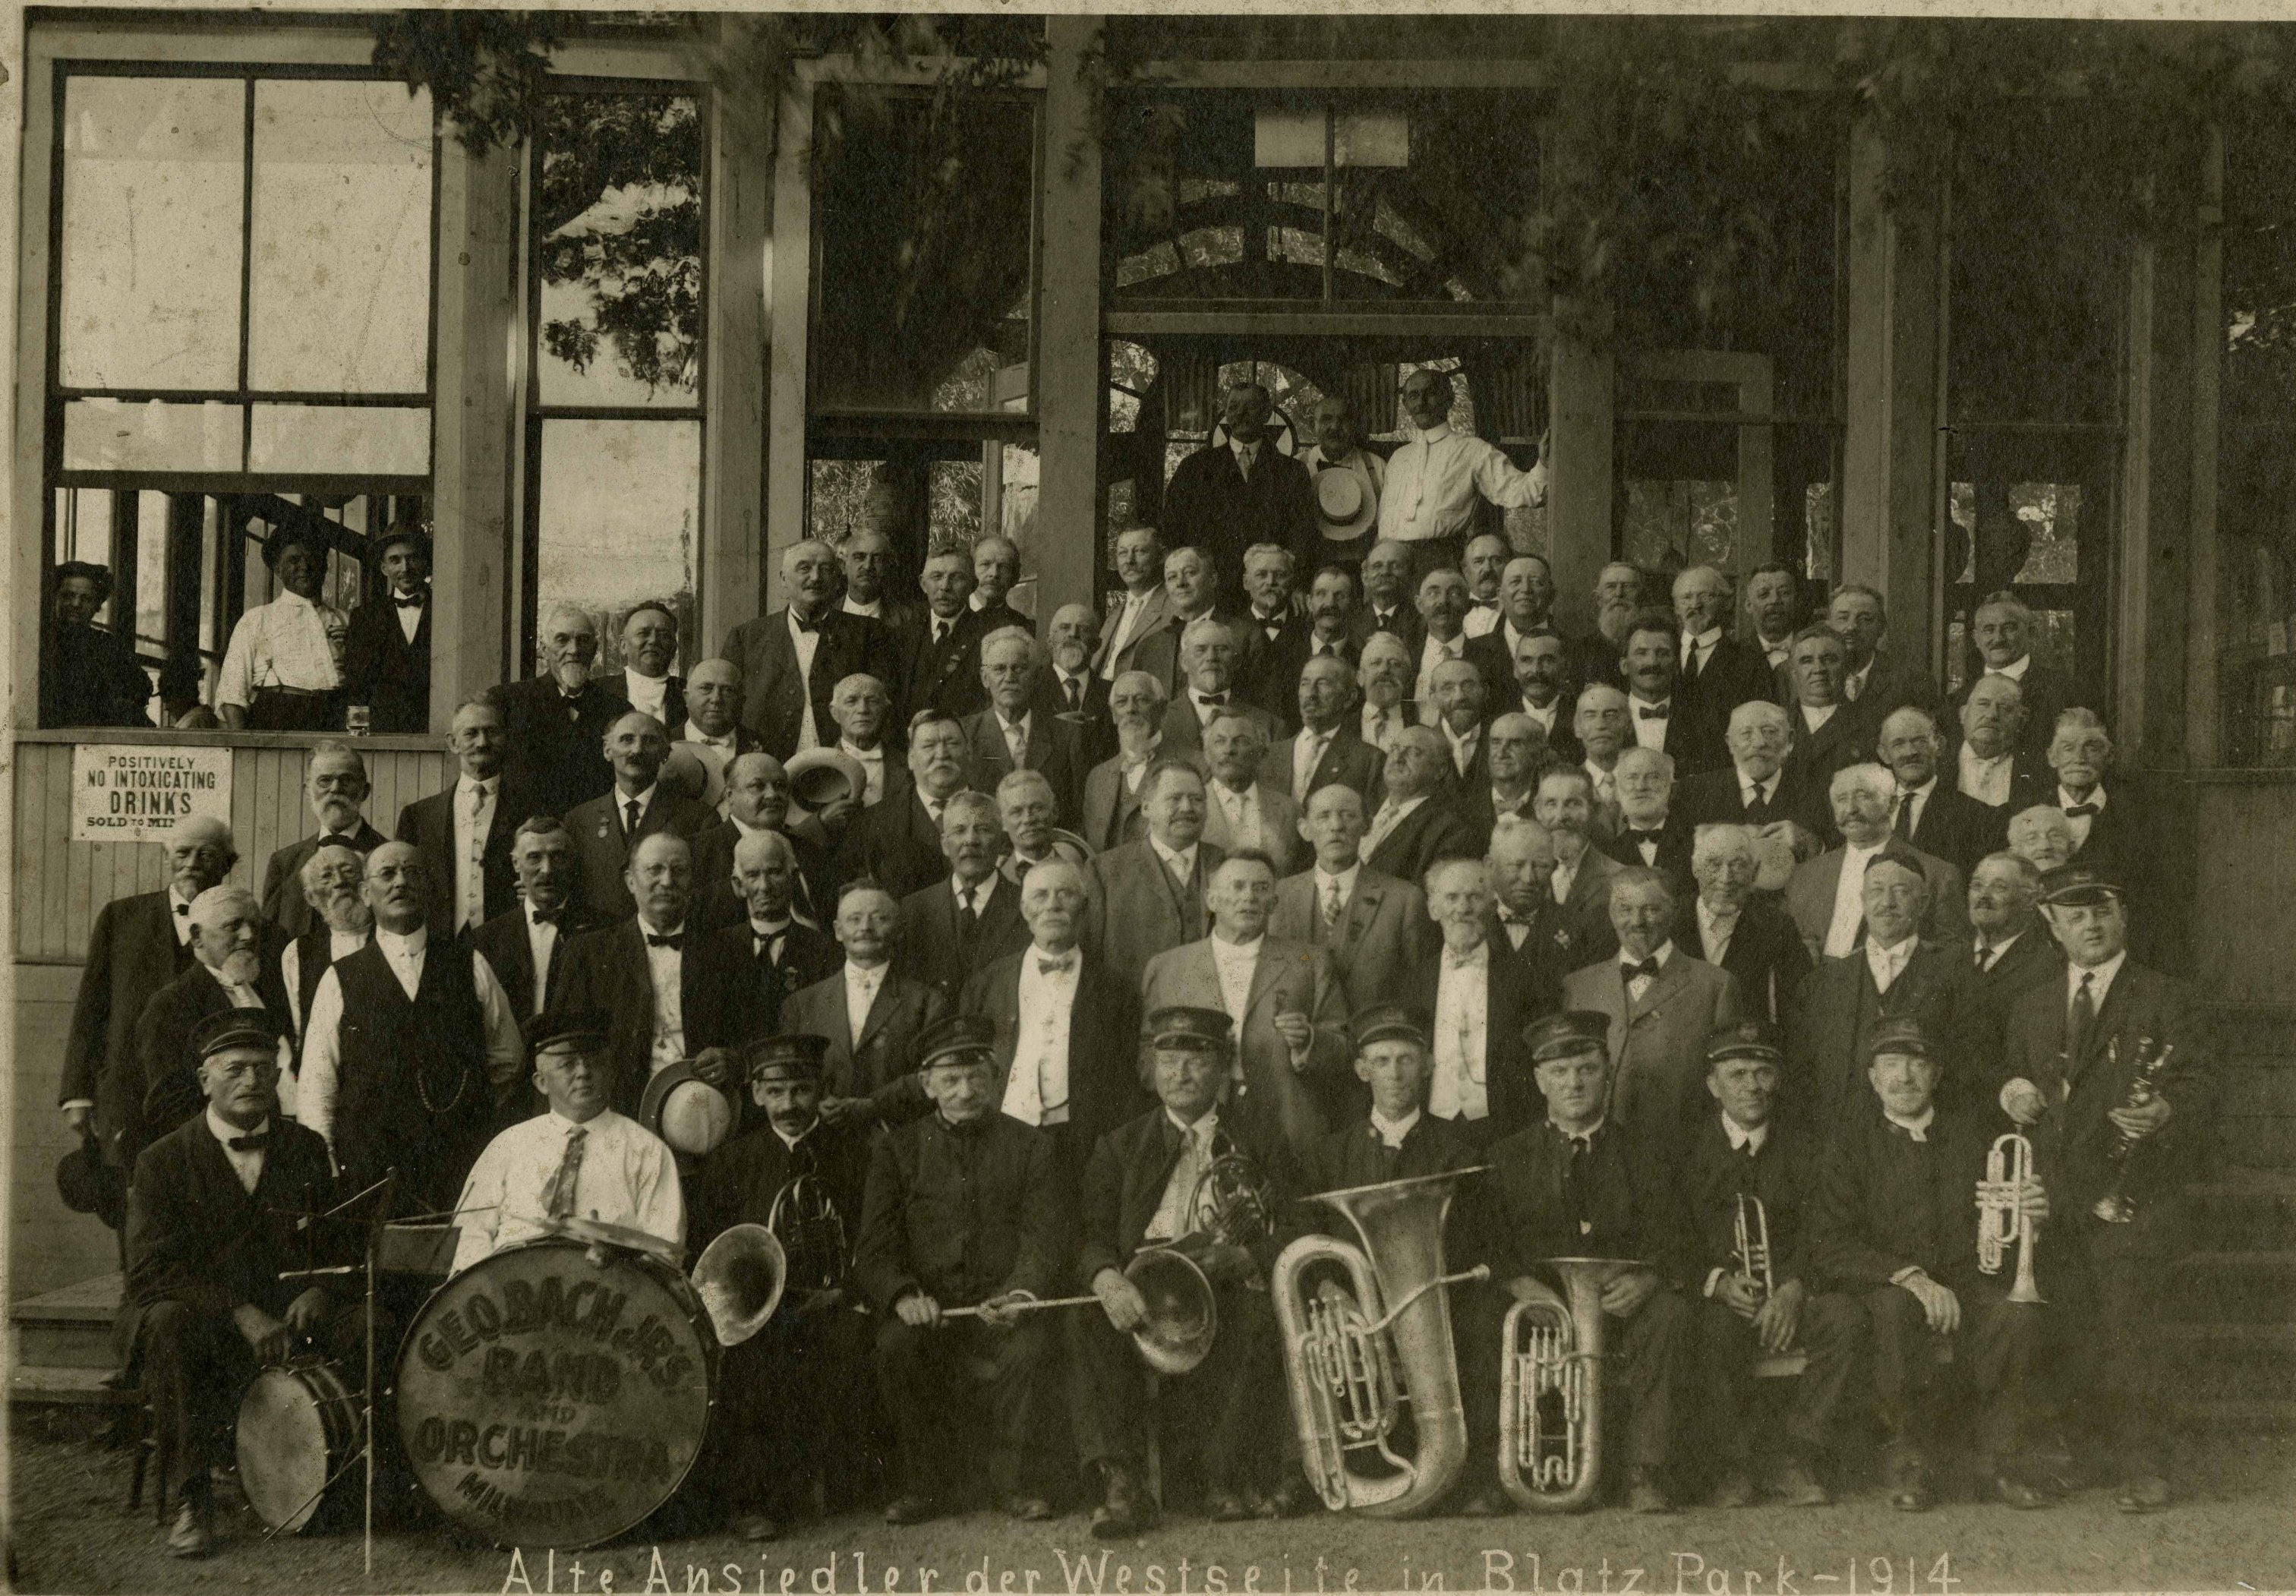 Photograph of a German community band and orchestra in Blatz Park in 1914.